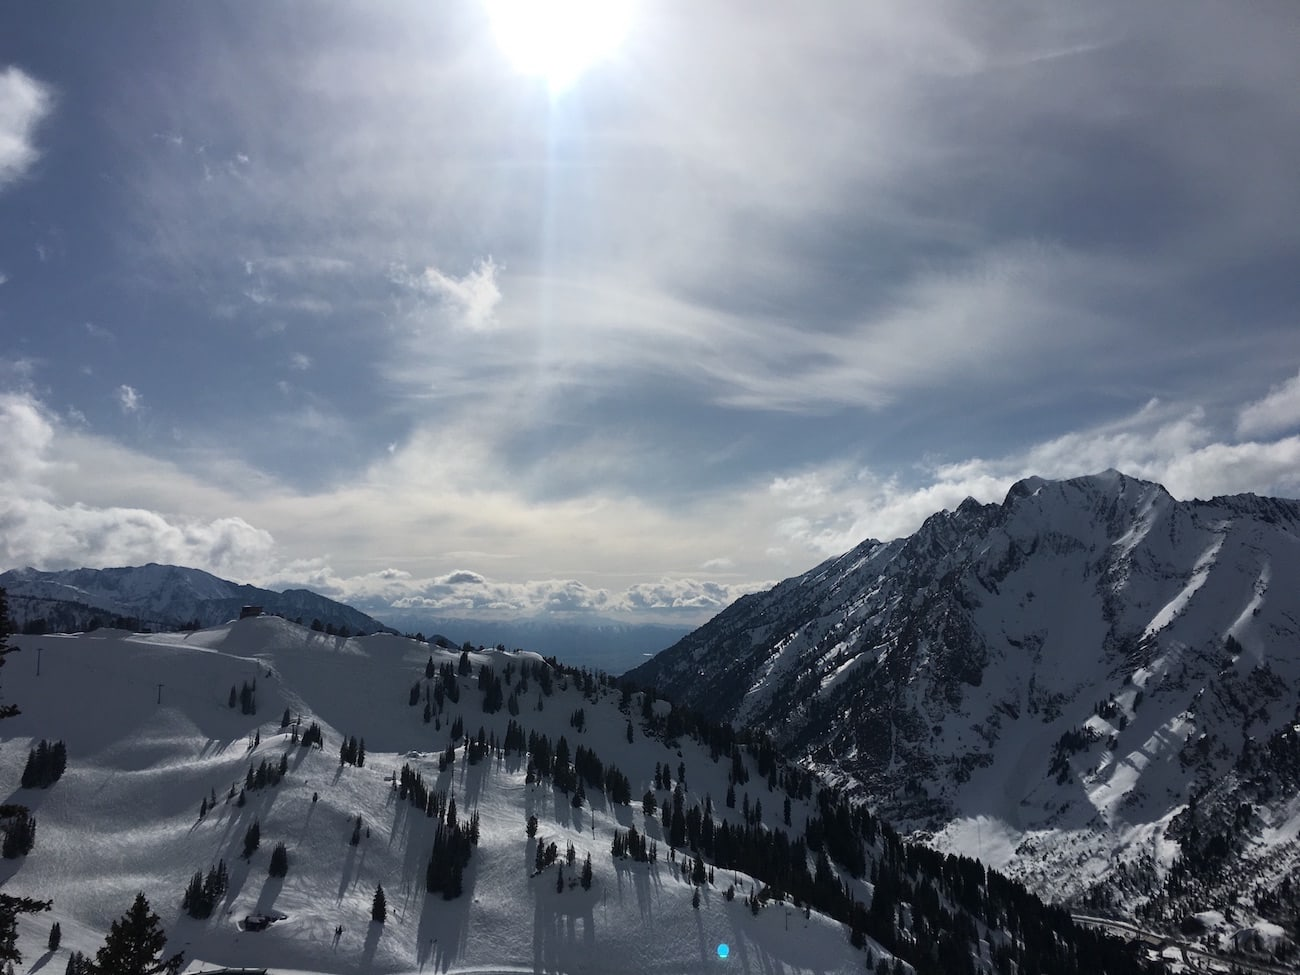 Alta Ski Area // Learn how to score discount lift tickets and save money skiing with this list of our favorite tips, deals, and multi-resort ski passes.